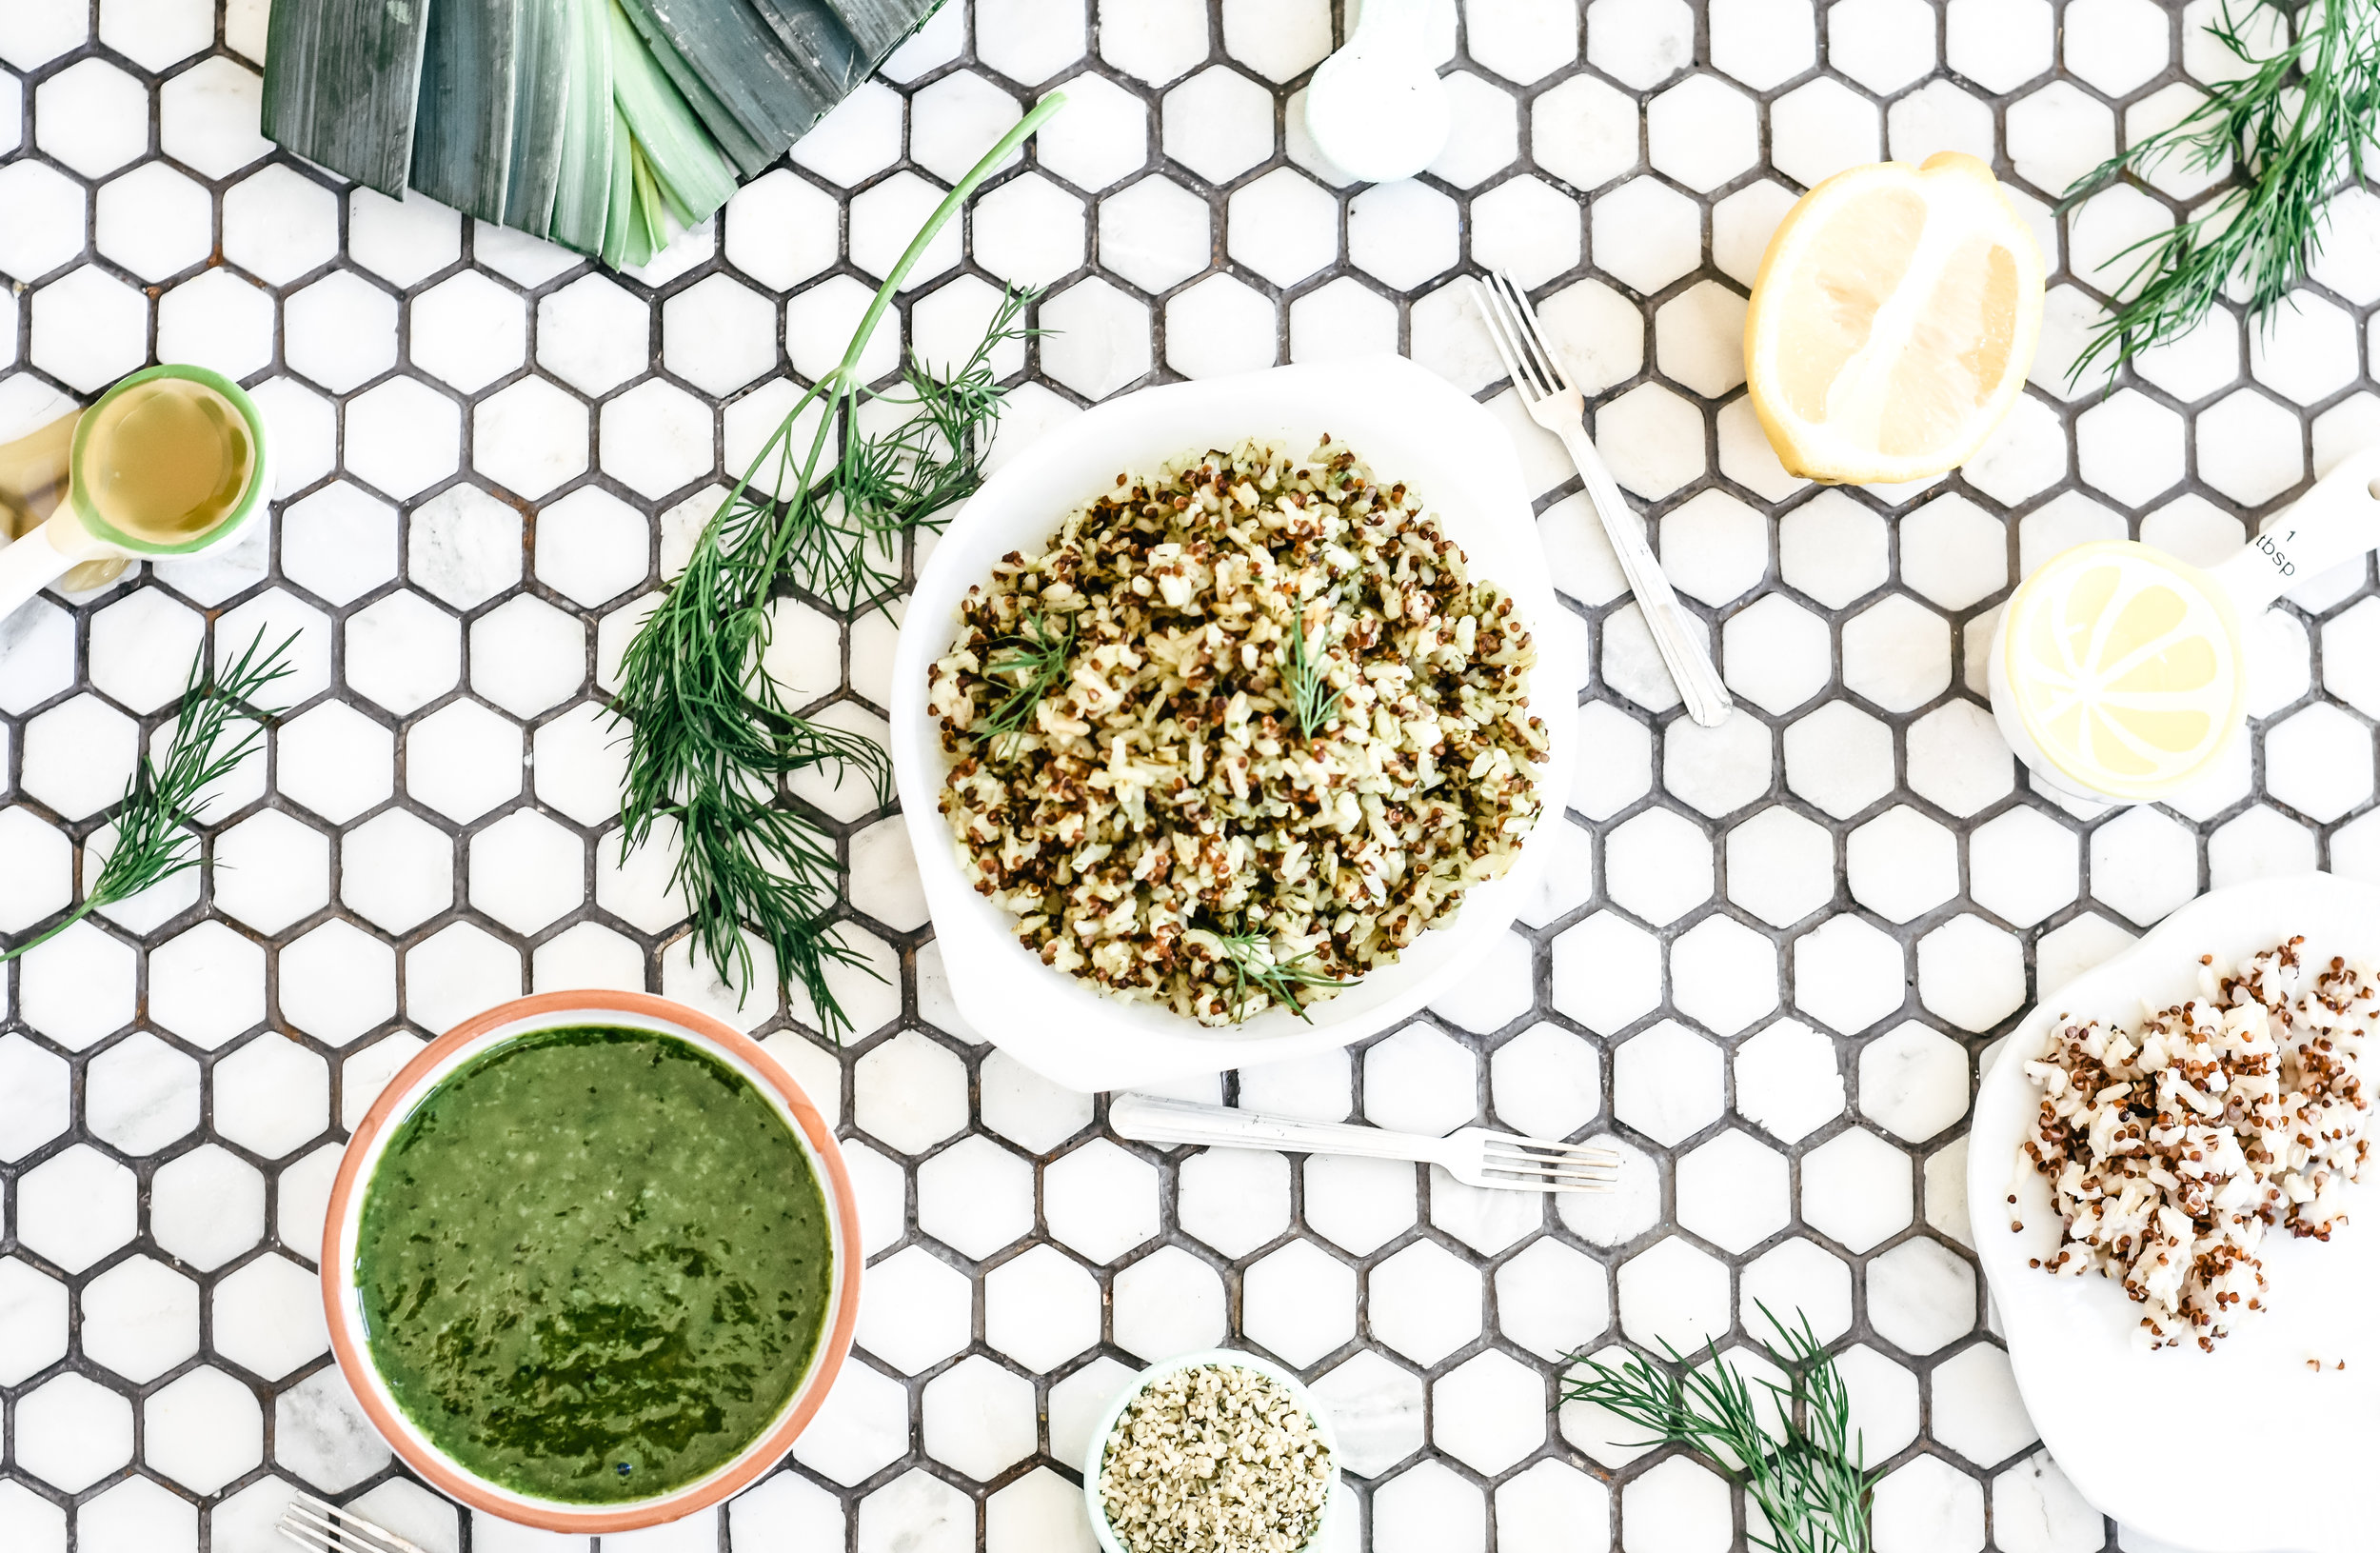 Dill sauce recipe with quinoa and path of life